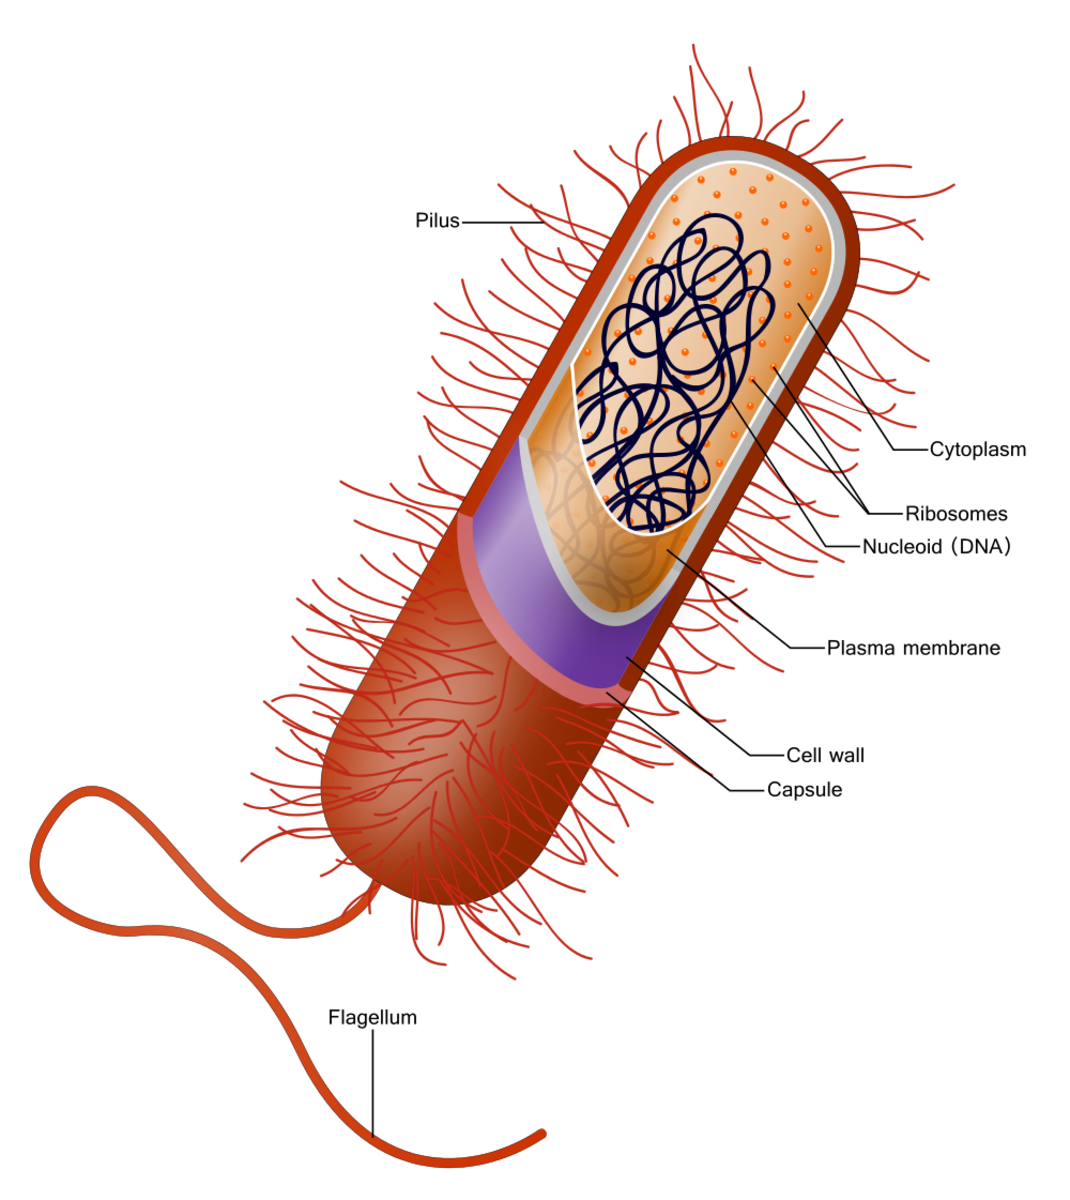 A bacterial cell (Some bacteria don't have a flagellum, capsule, or pilli. They may also have a different shape.)